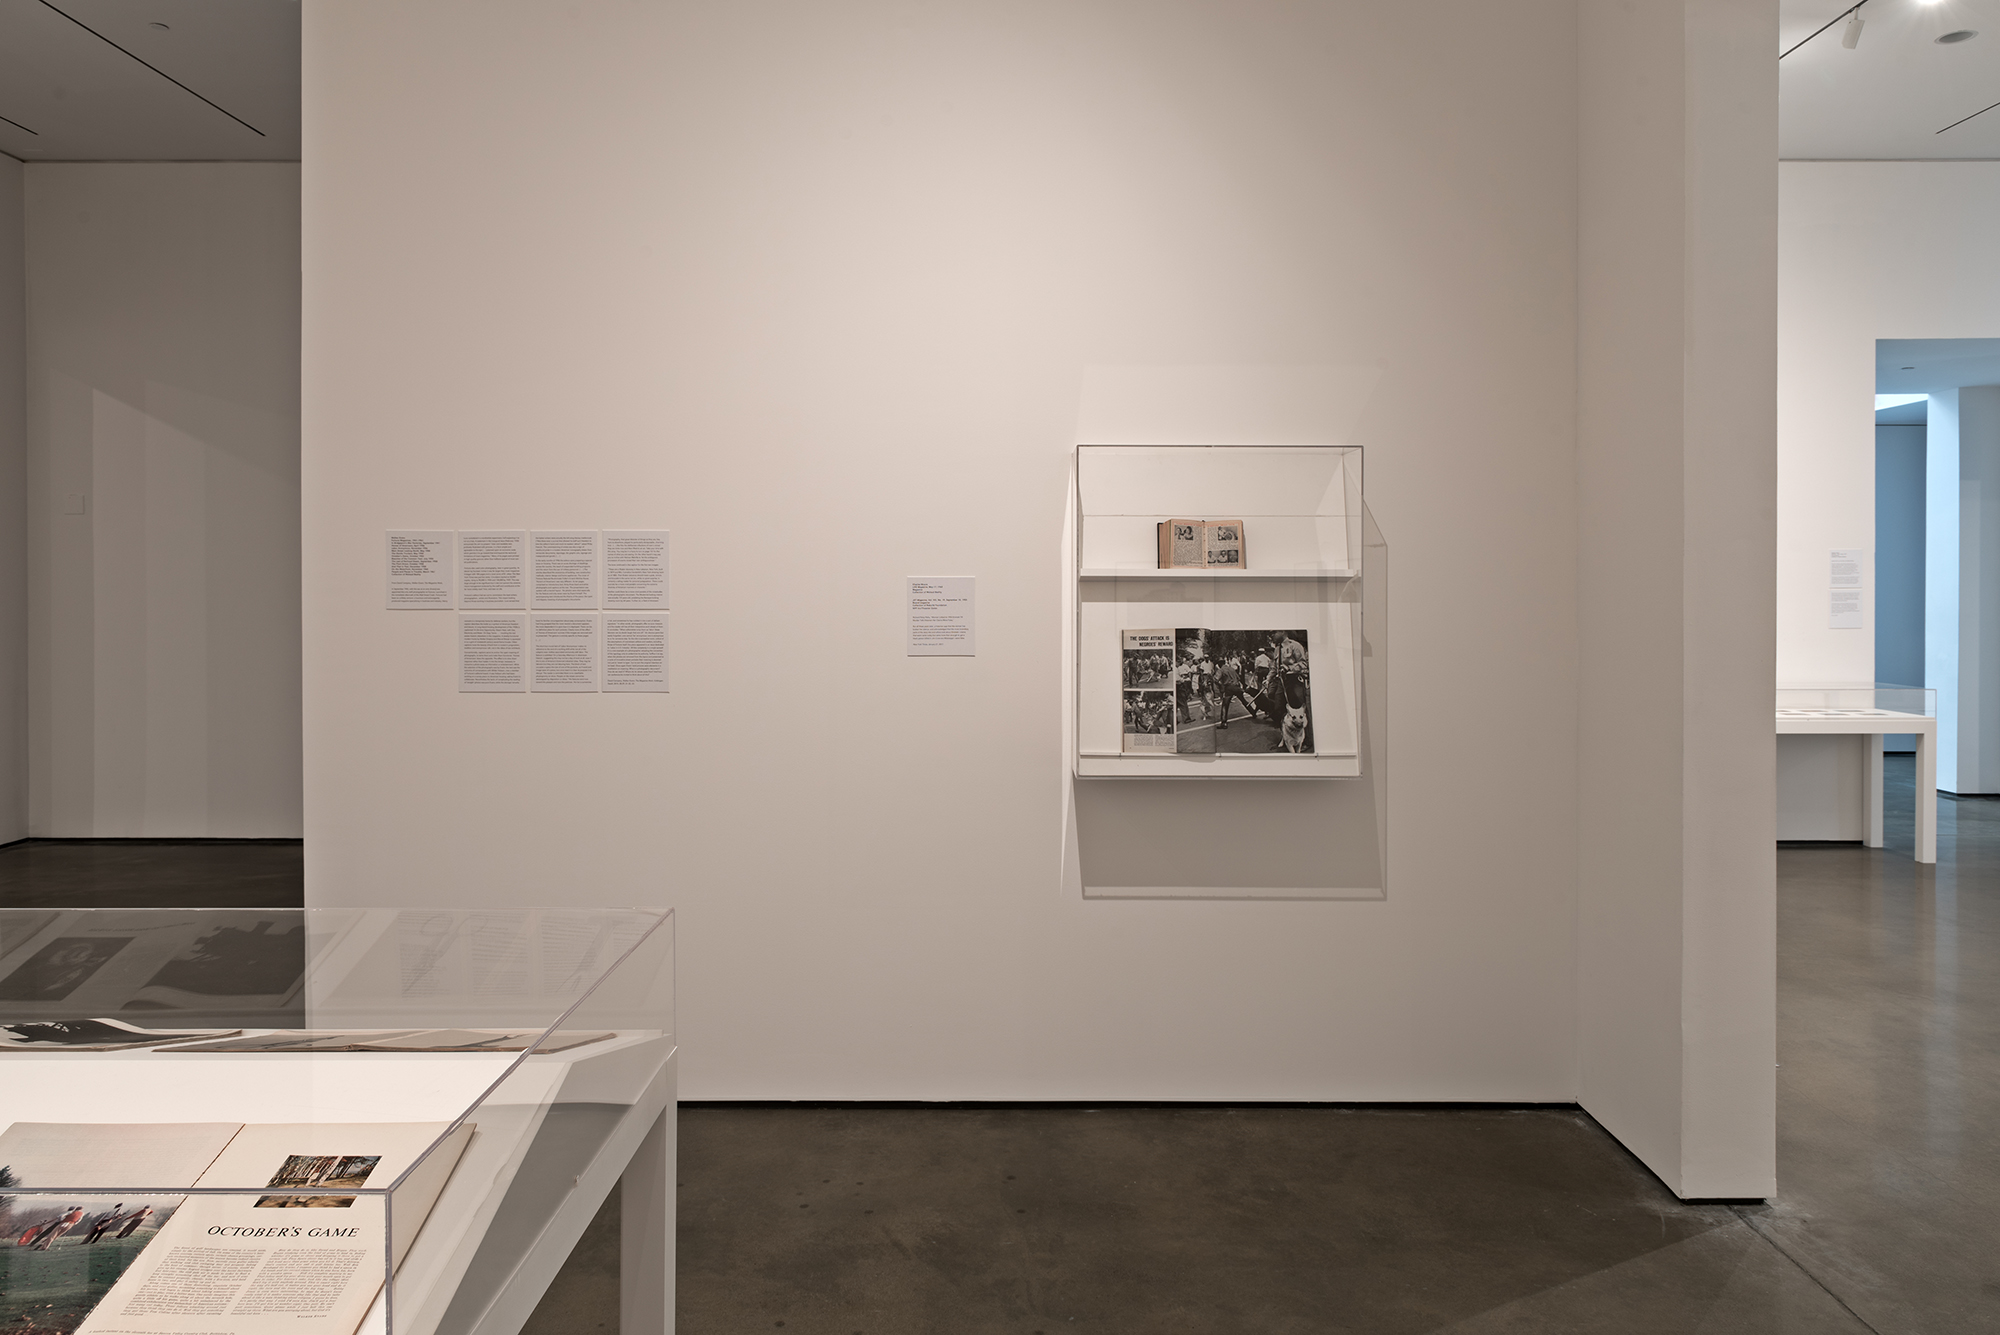 Picture Industry , Hessel Museum, Center for Curatorial Studies, Bard College, Annandale-on-Hudson, NY, 2017.     Walker Evans, JET Magazine, and Charles Moore